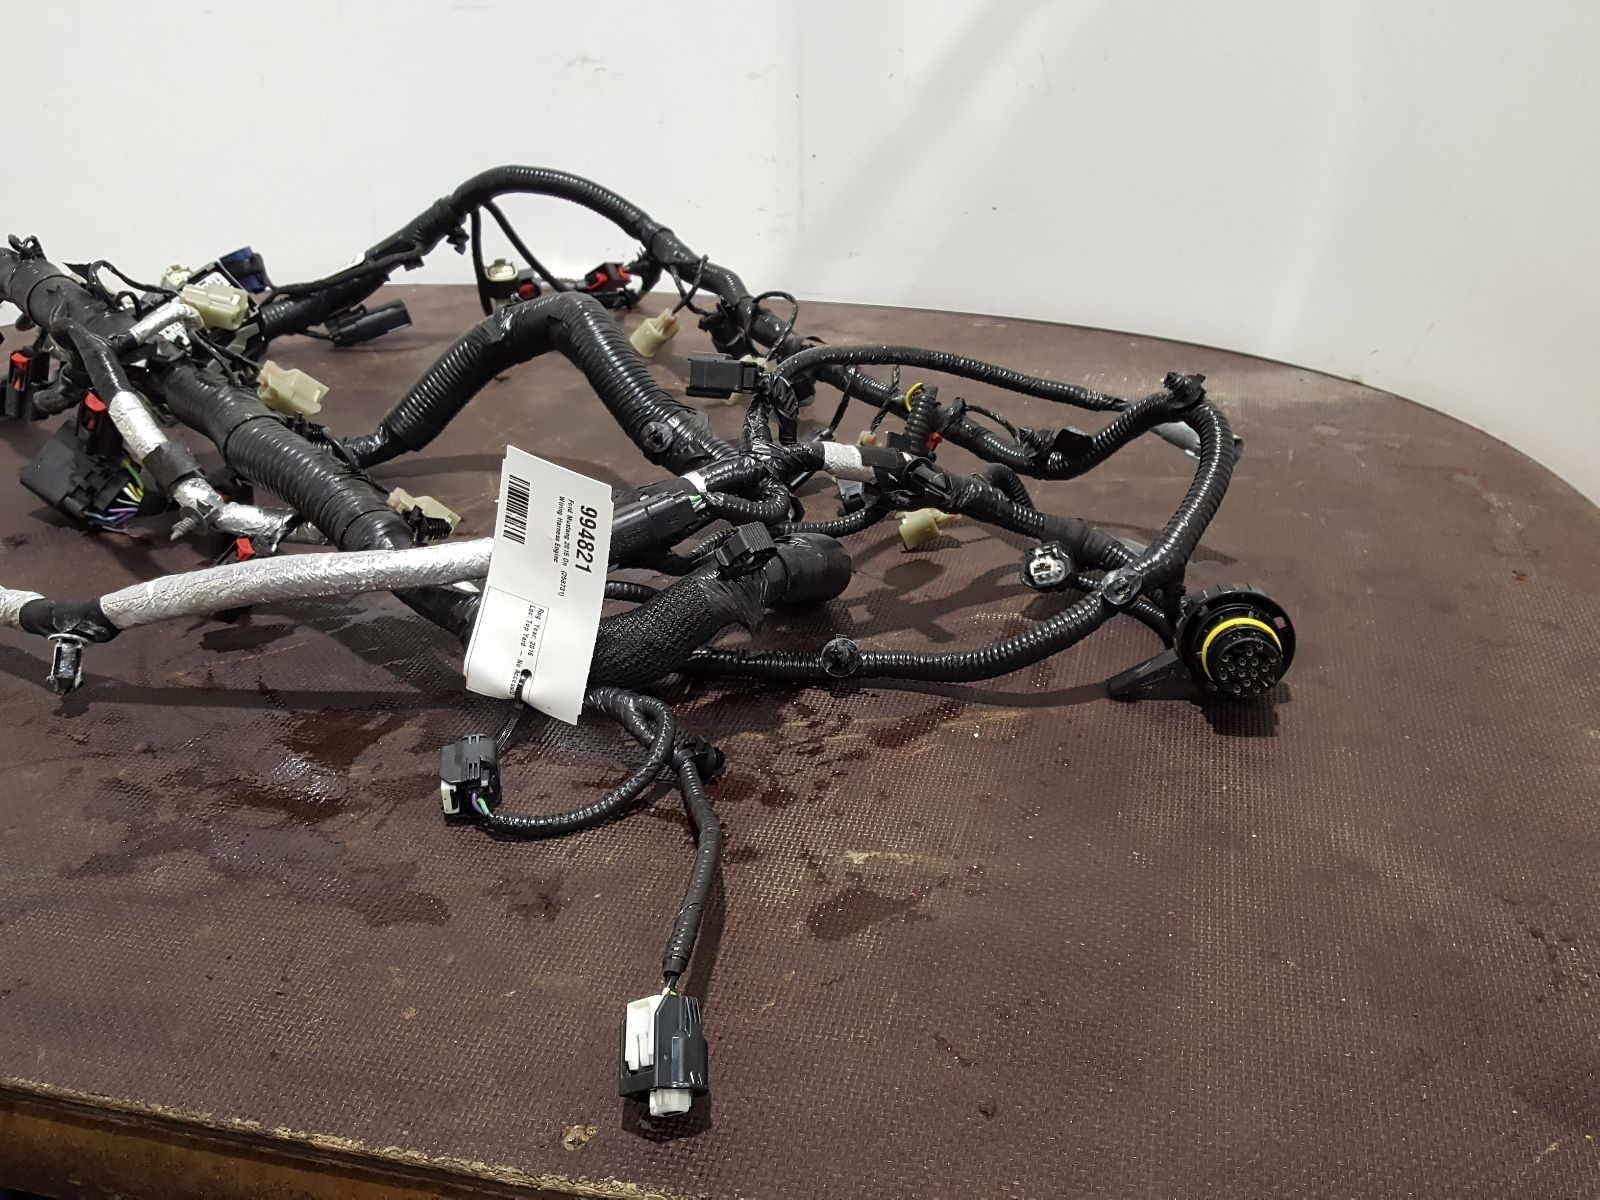 Ford Mustang 2015 To 2018 Gt Wiring Harness Engine Used And Spare Parts At Combellack Vehicle Recyclers